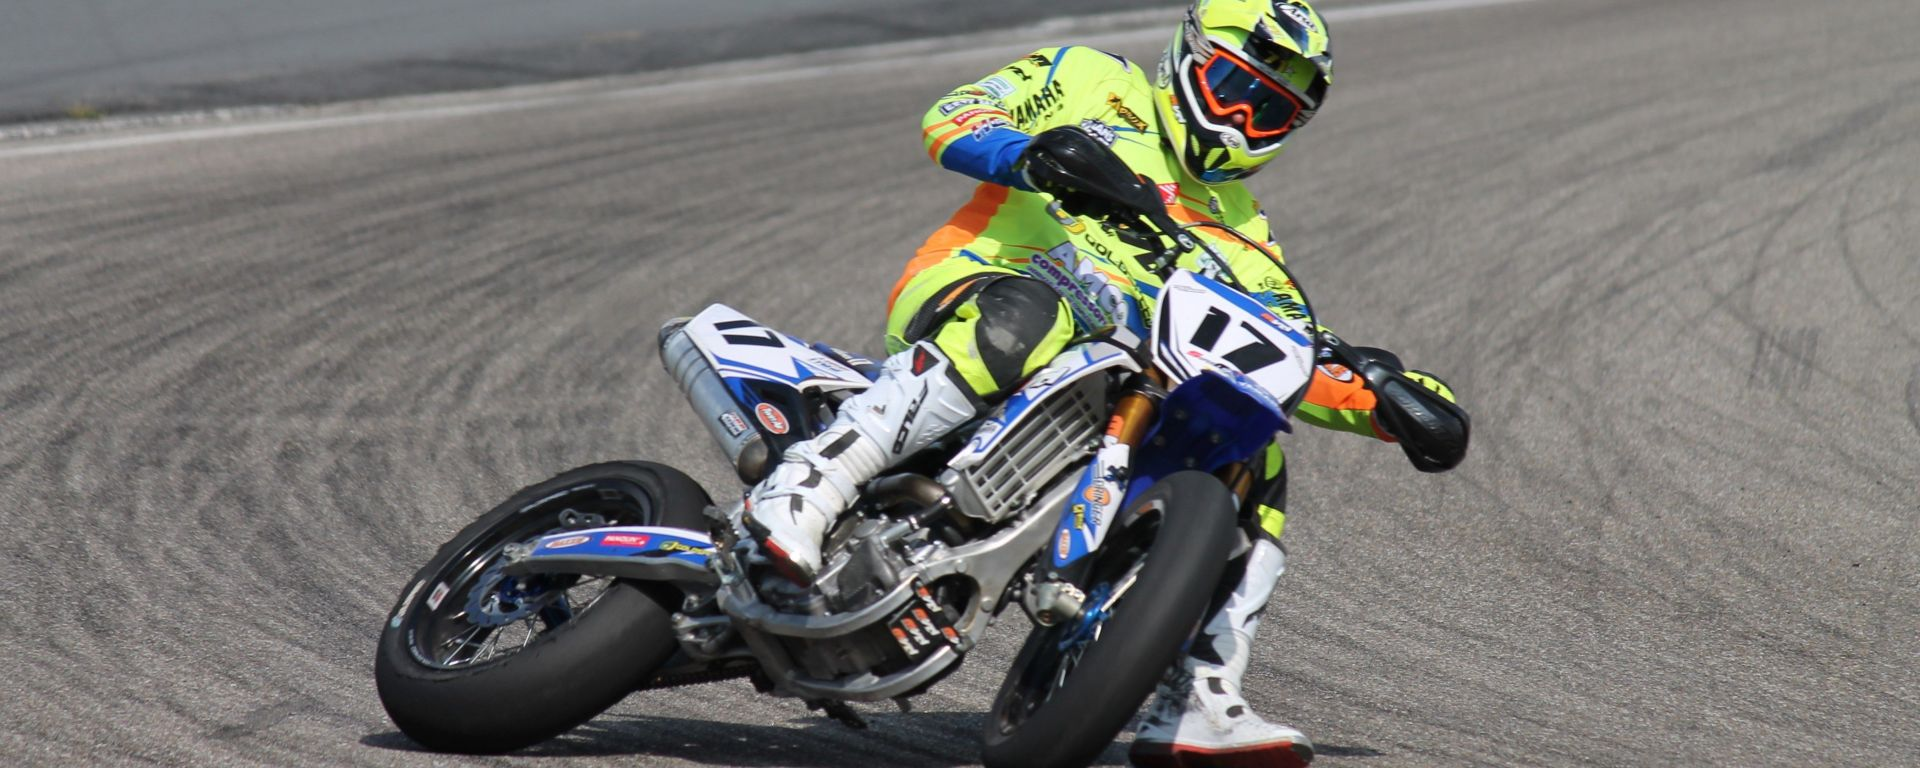 Supermotard: significato e differenze con enduro